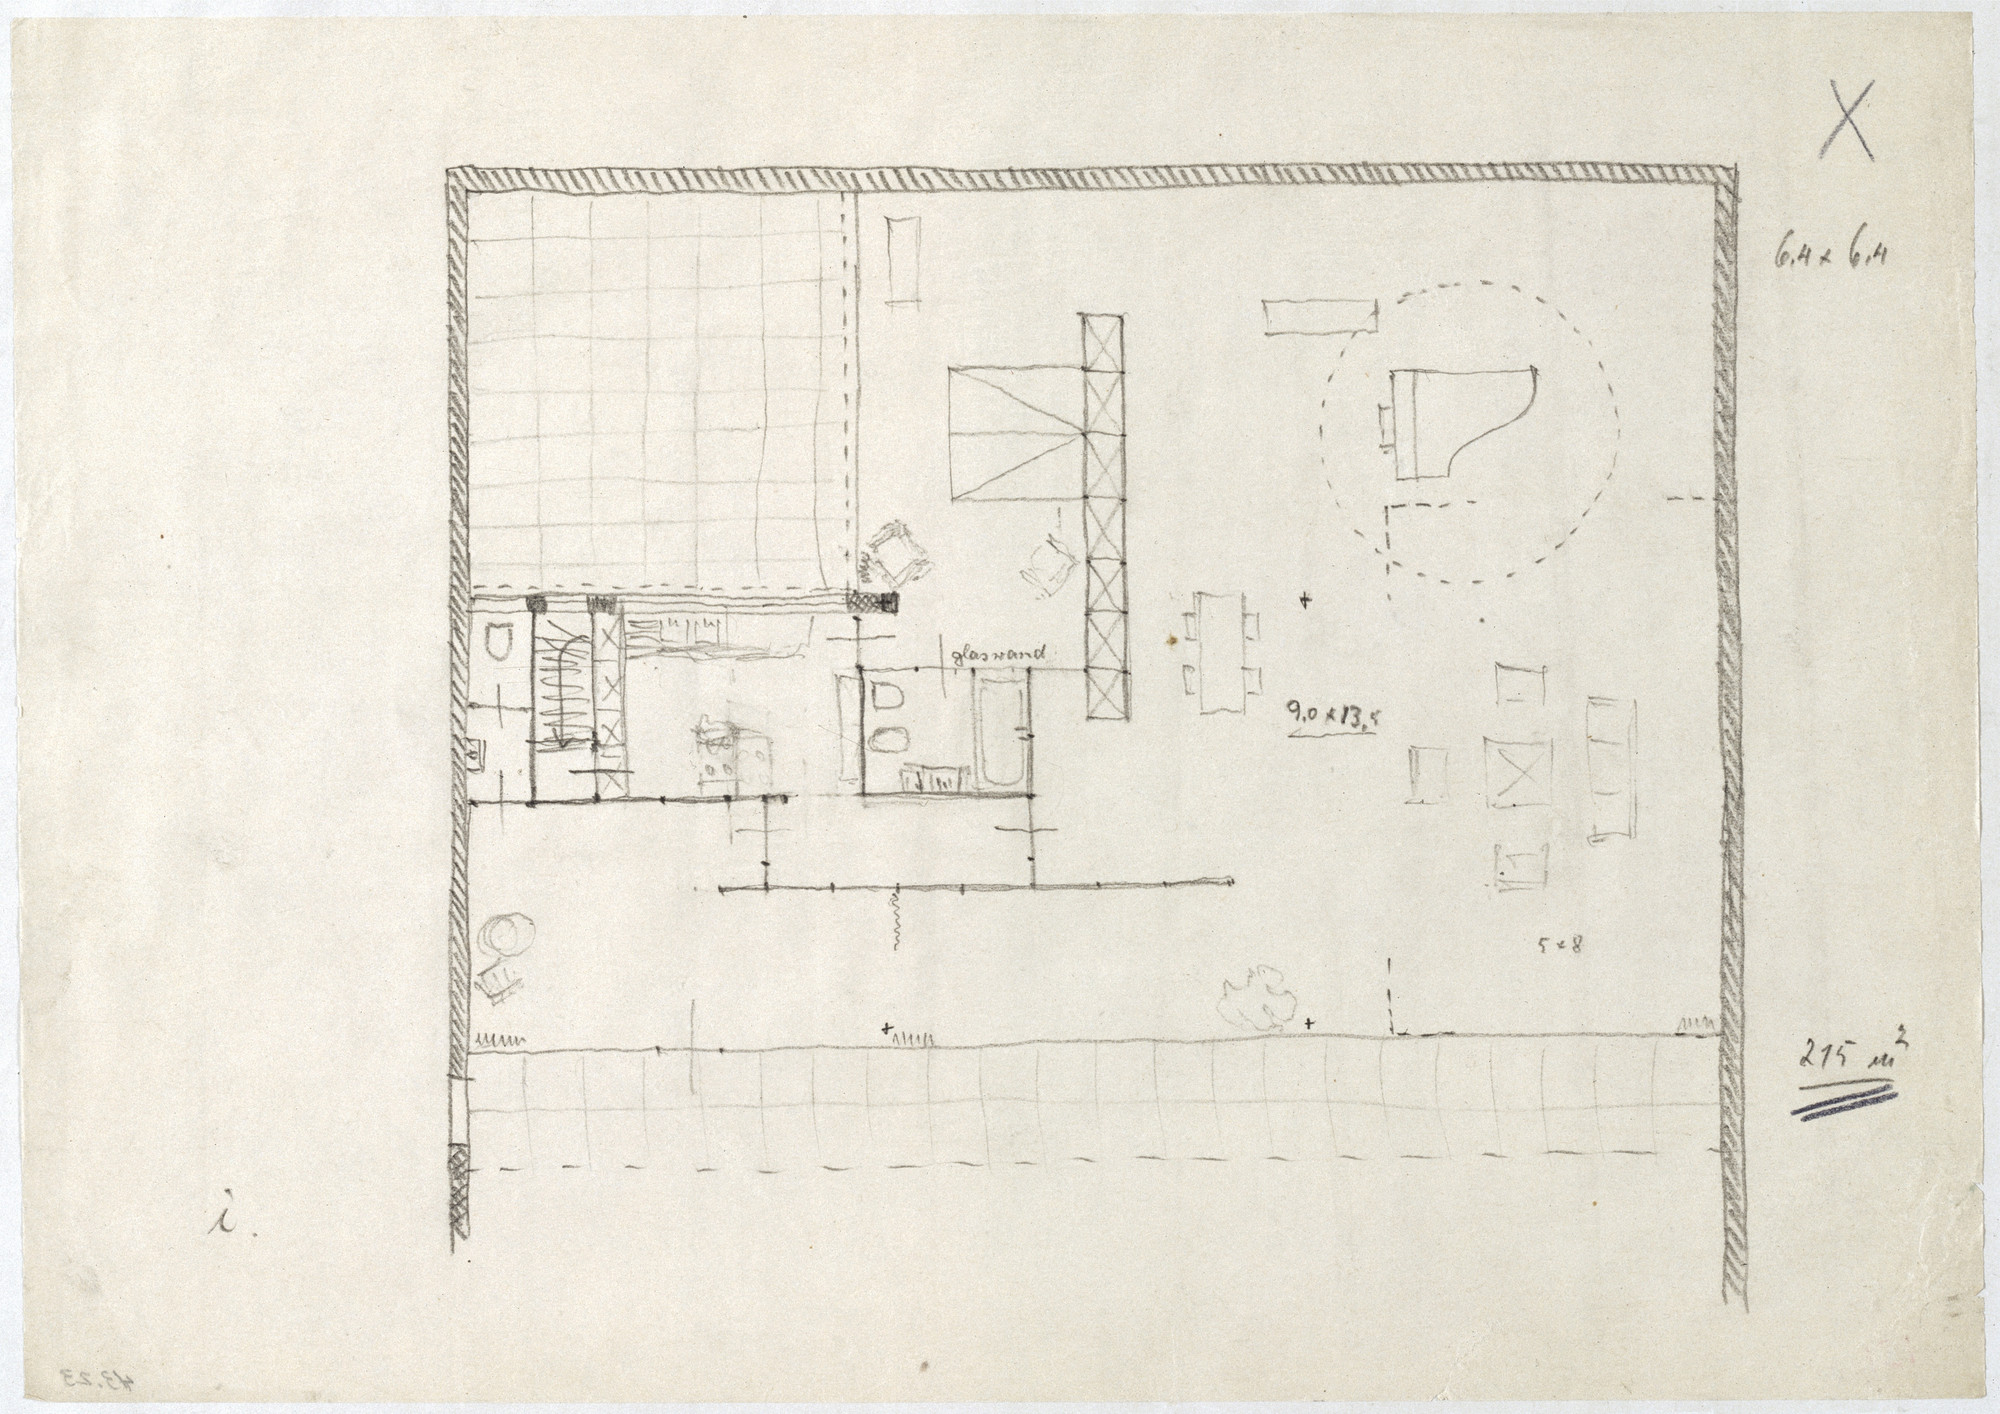 Ludwig Mies van der Rohe. Hubbe House Project, Magdeburg, Germany (Floor plan sketch). 1934-1935